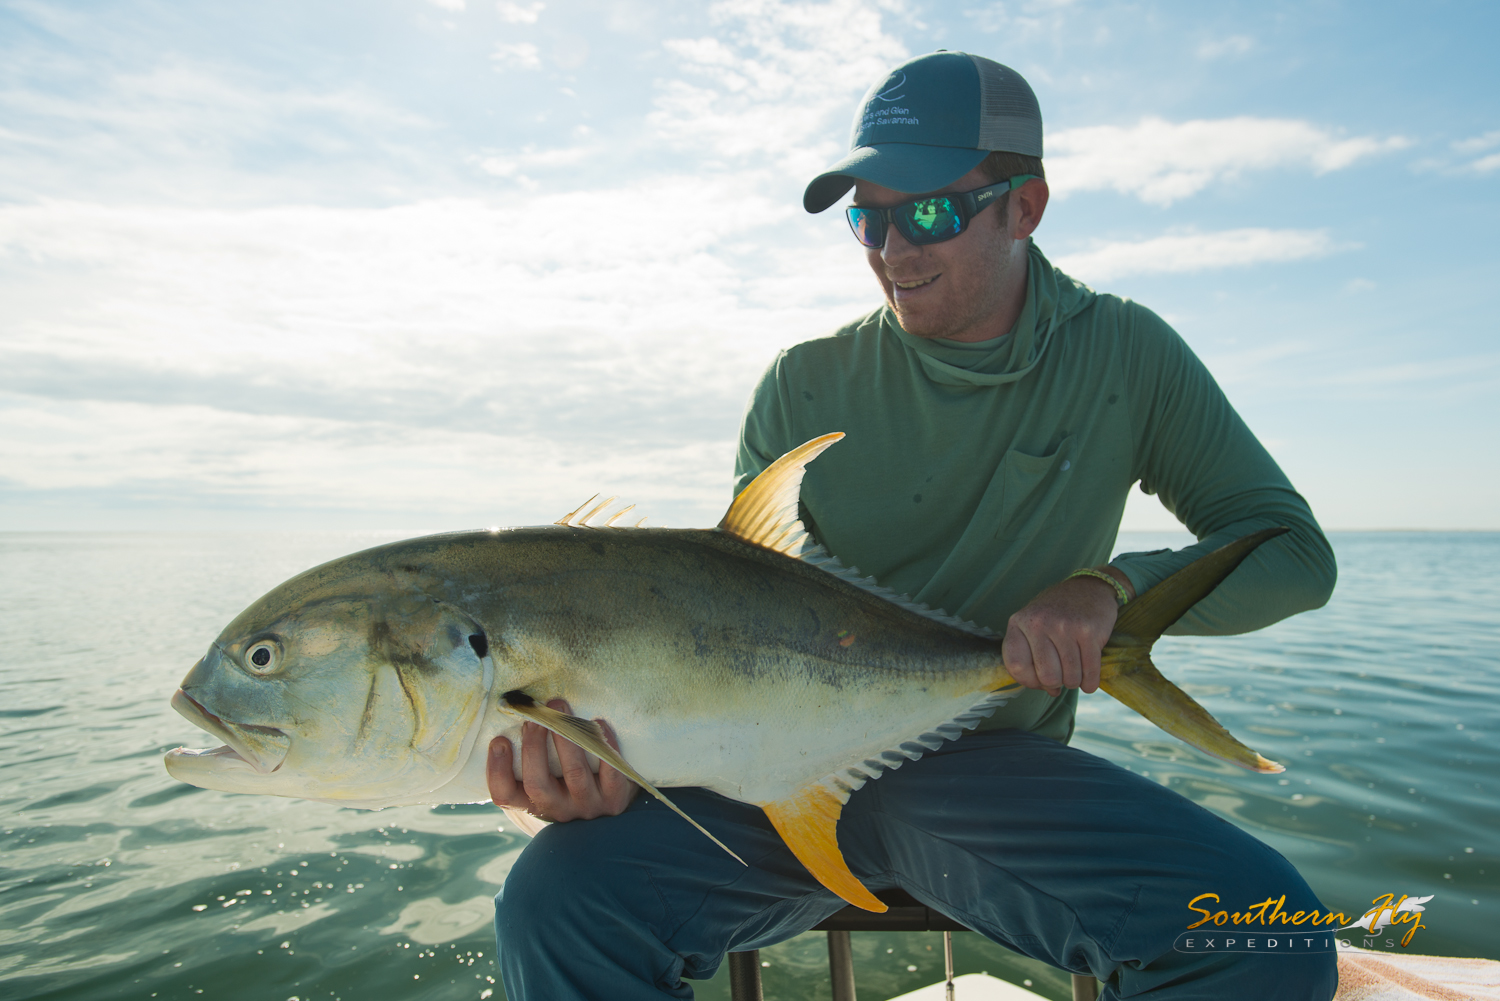 Top Spin Fishing Guide Hopedale Southern Fly Expeditions